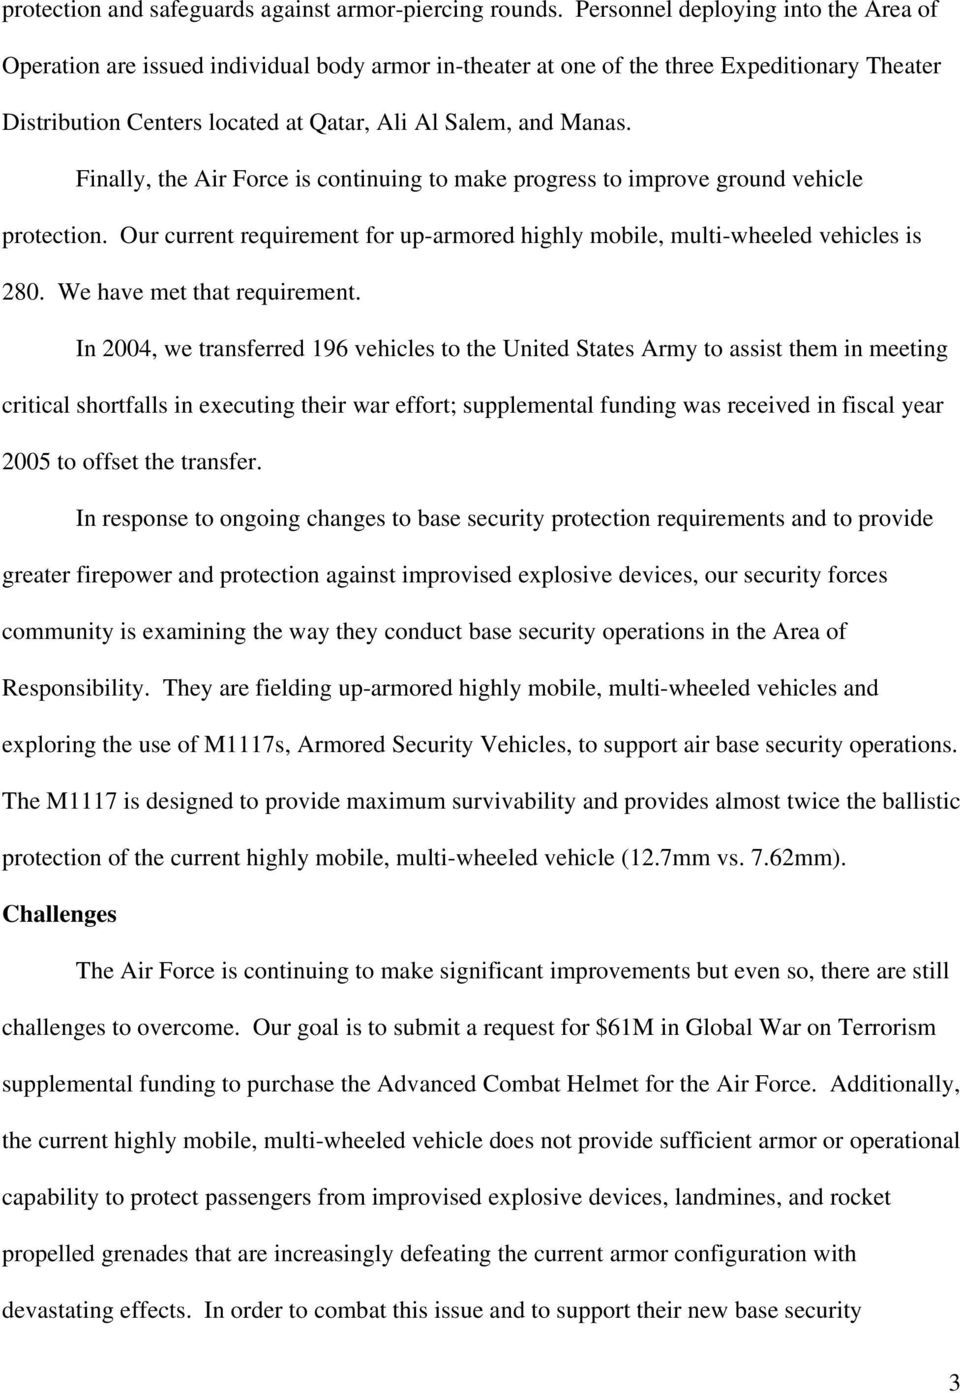 Finally, the Air Force is continuing to make progress to improve ground vehicle protection. Our current requirement for up-armored highly mobile, multi-wheeled vehicles is 280.